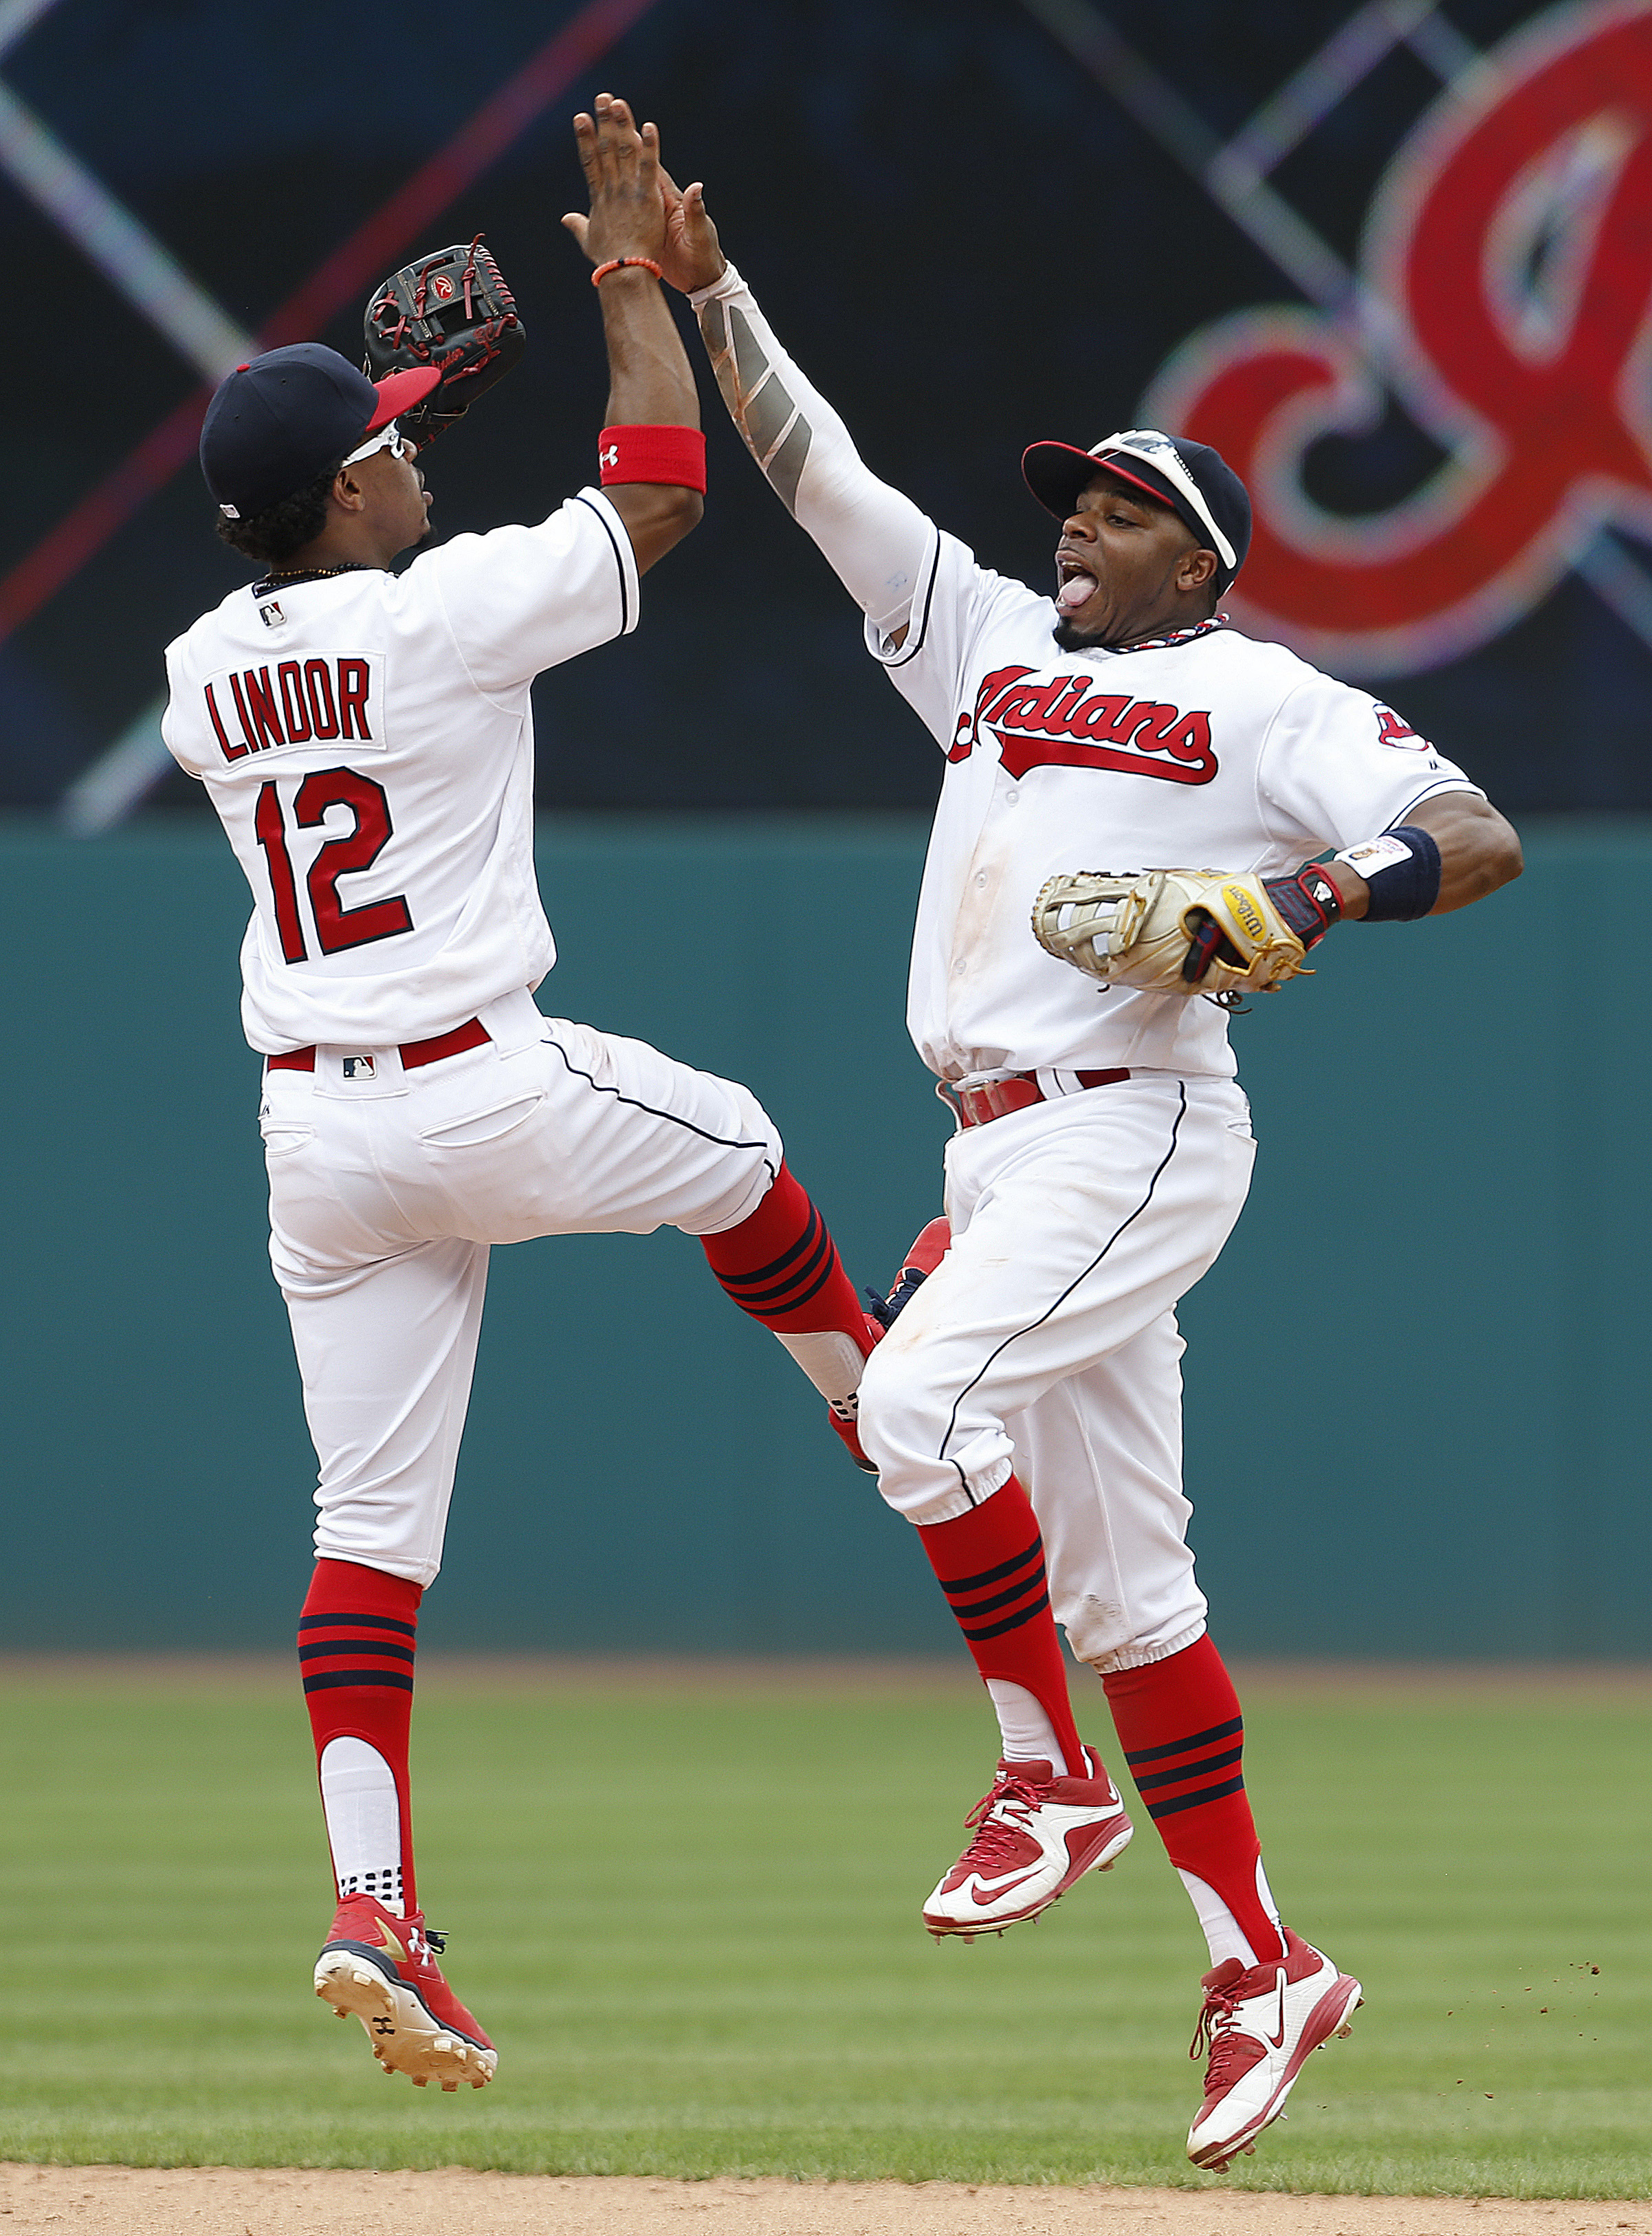 Cleveland Indians' Francisco Lindor (12) and Rajai Davis (20) celebrate a 9-2 win over the Minnesota Twins in a baseball game Thursday, Aug. 4, 2016, in Cleveland. (AP Photo/Ron Schwane)